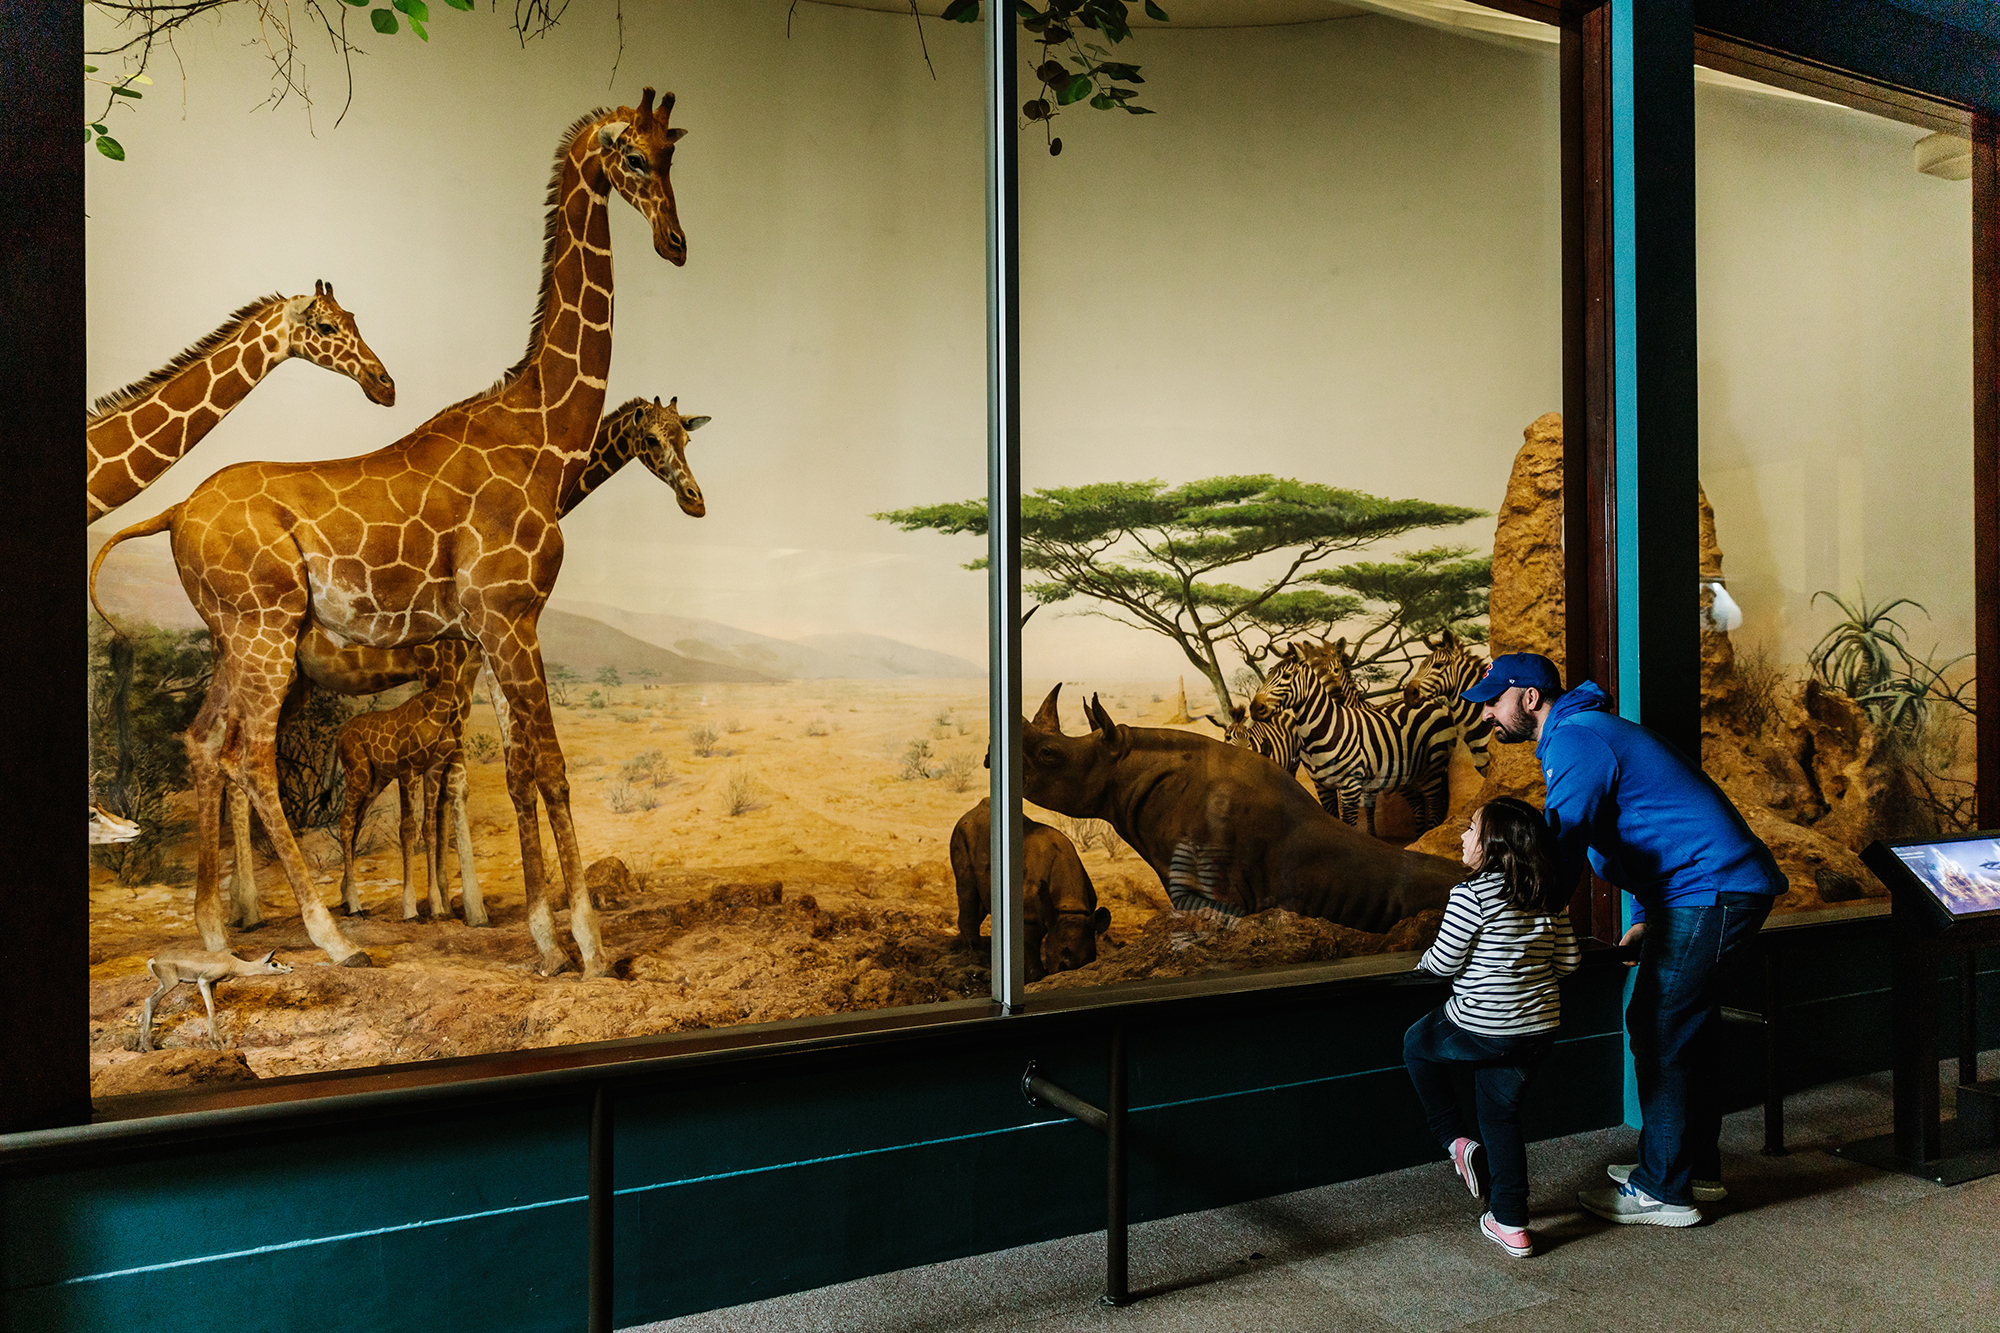 Museum visitors viewing a diorama featuring giraffes, rhinoceroses, and zebras.